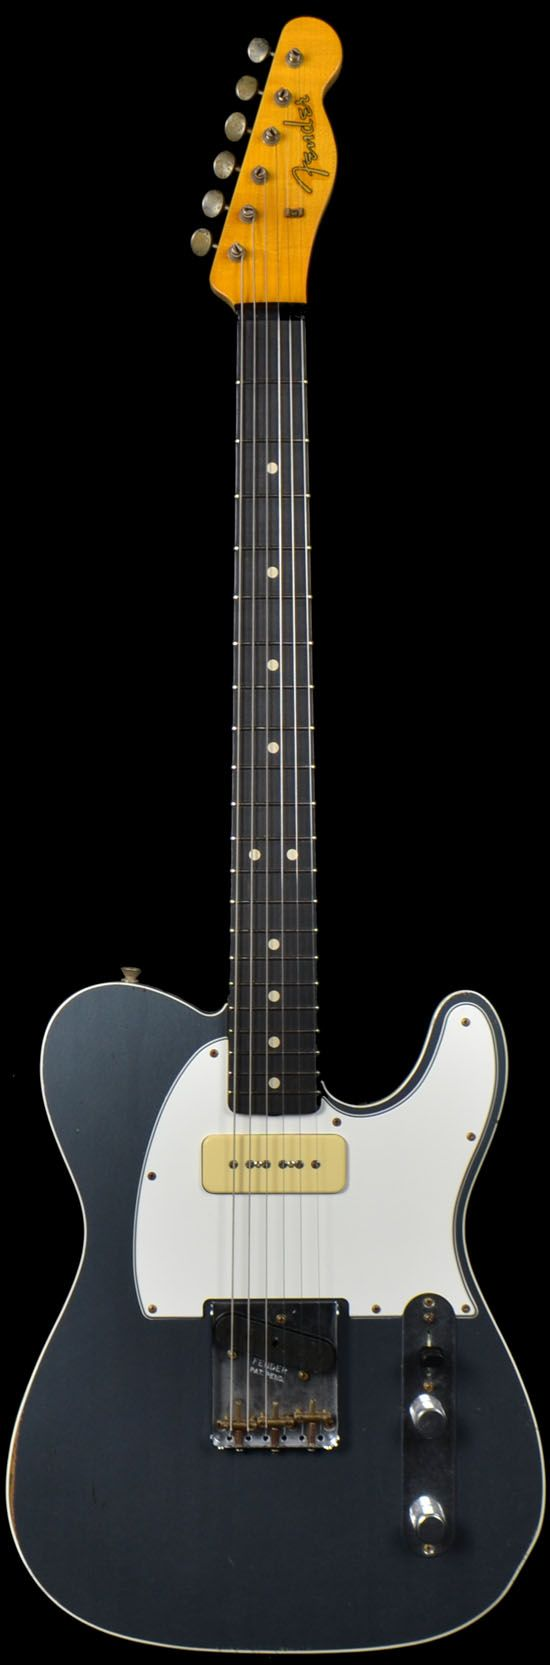 Fender 2 Tone Telecaster w P90 Charcoal Frost Metallic Black Back